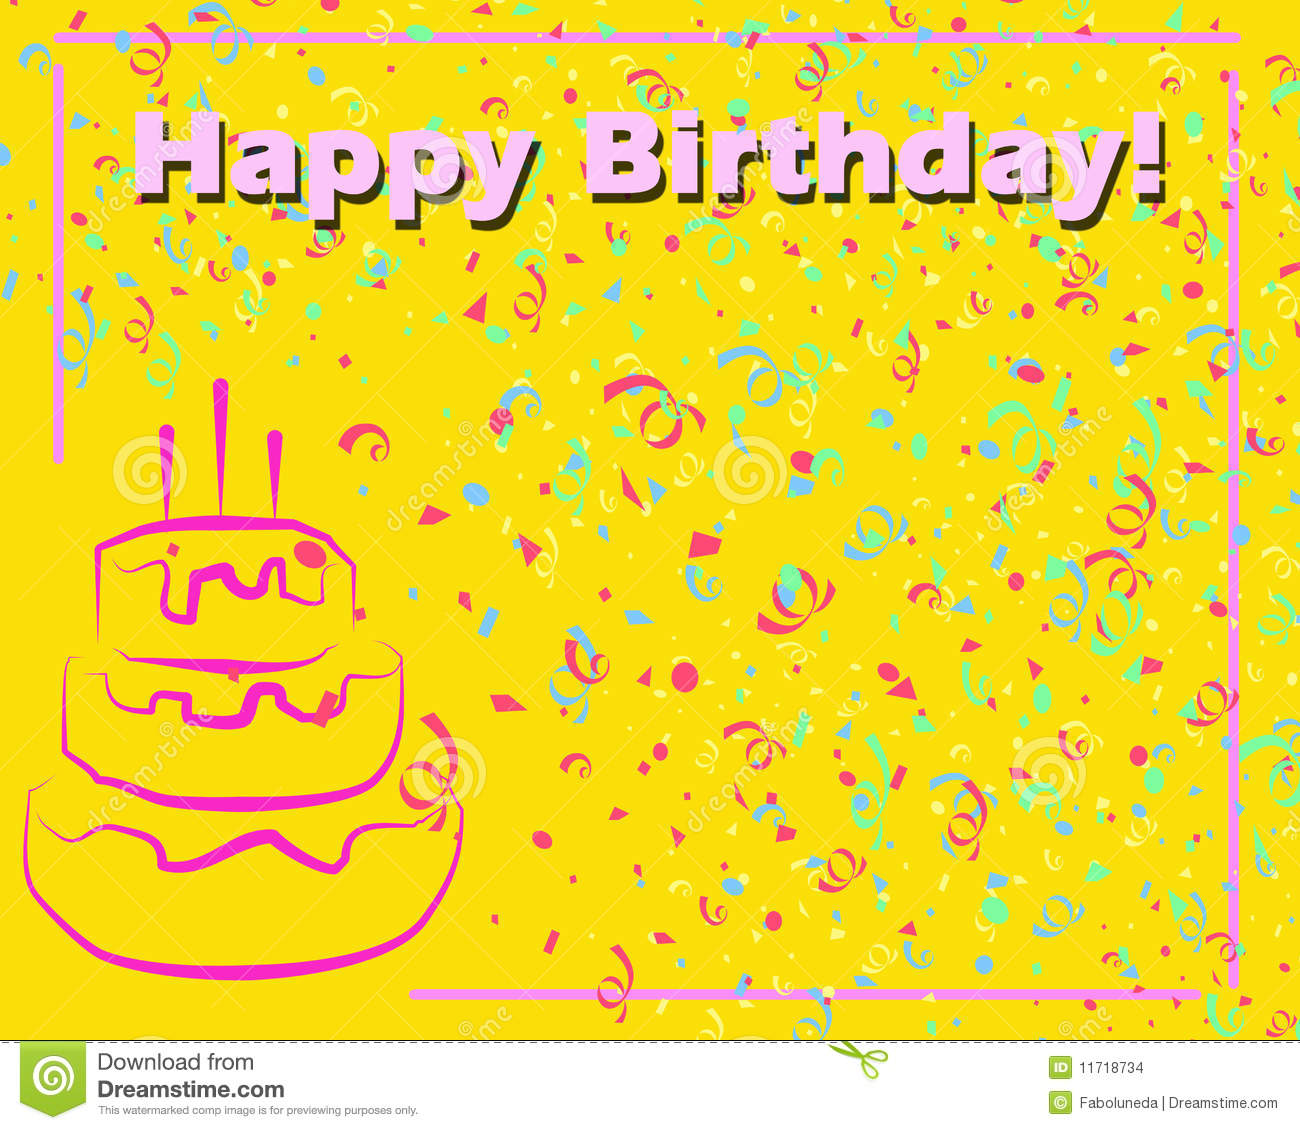 Joyeux Anniversaire Card Yellow Illustration Stock Illustration Du